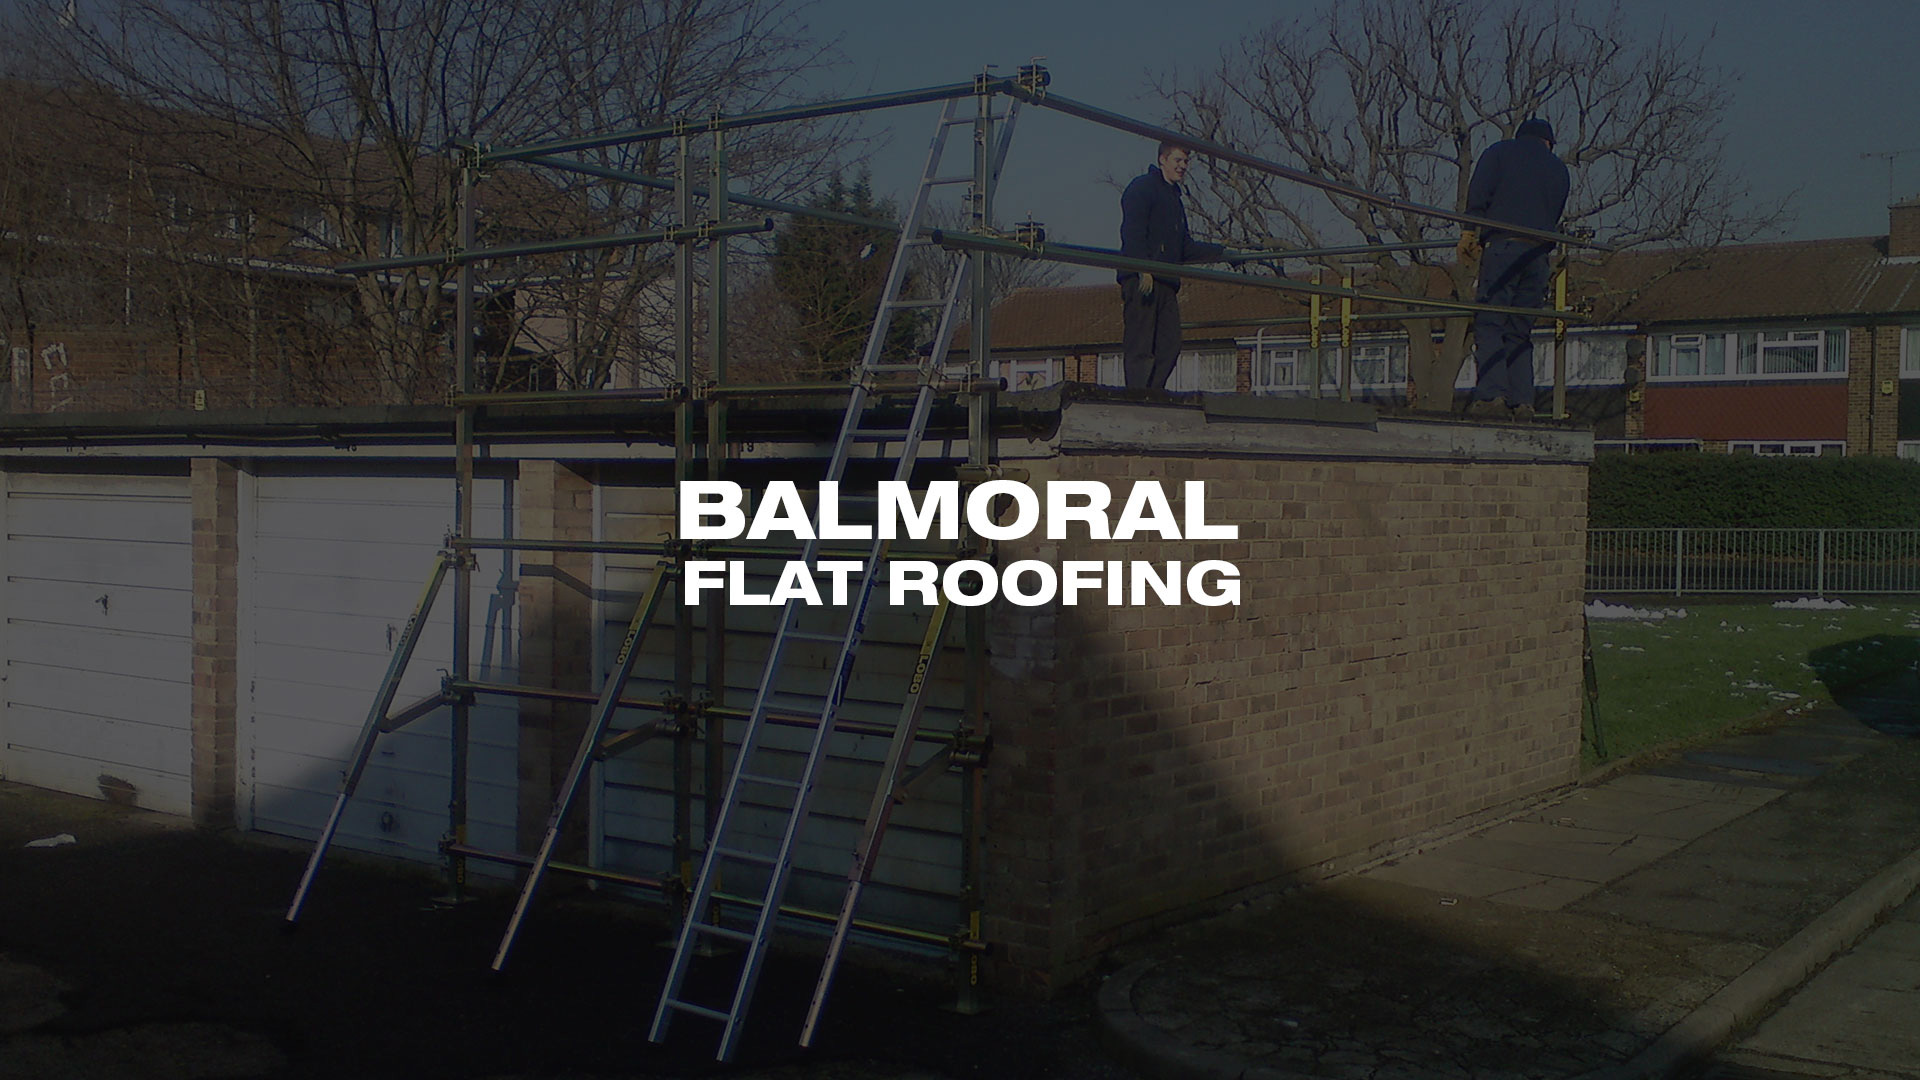 Balmoral Flat Roofing Ltd